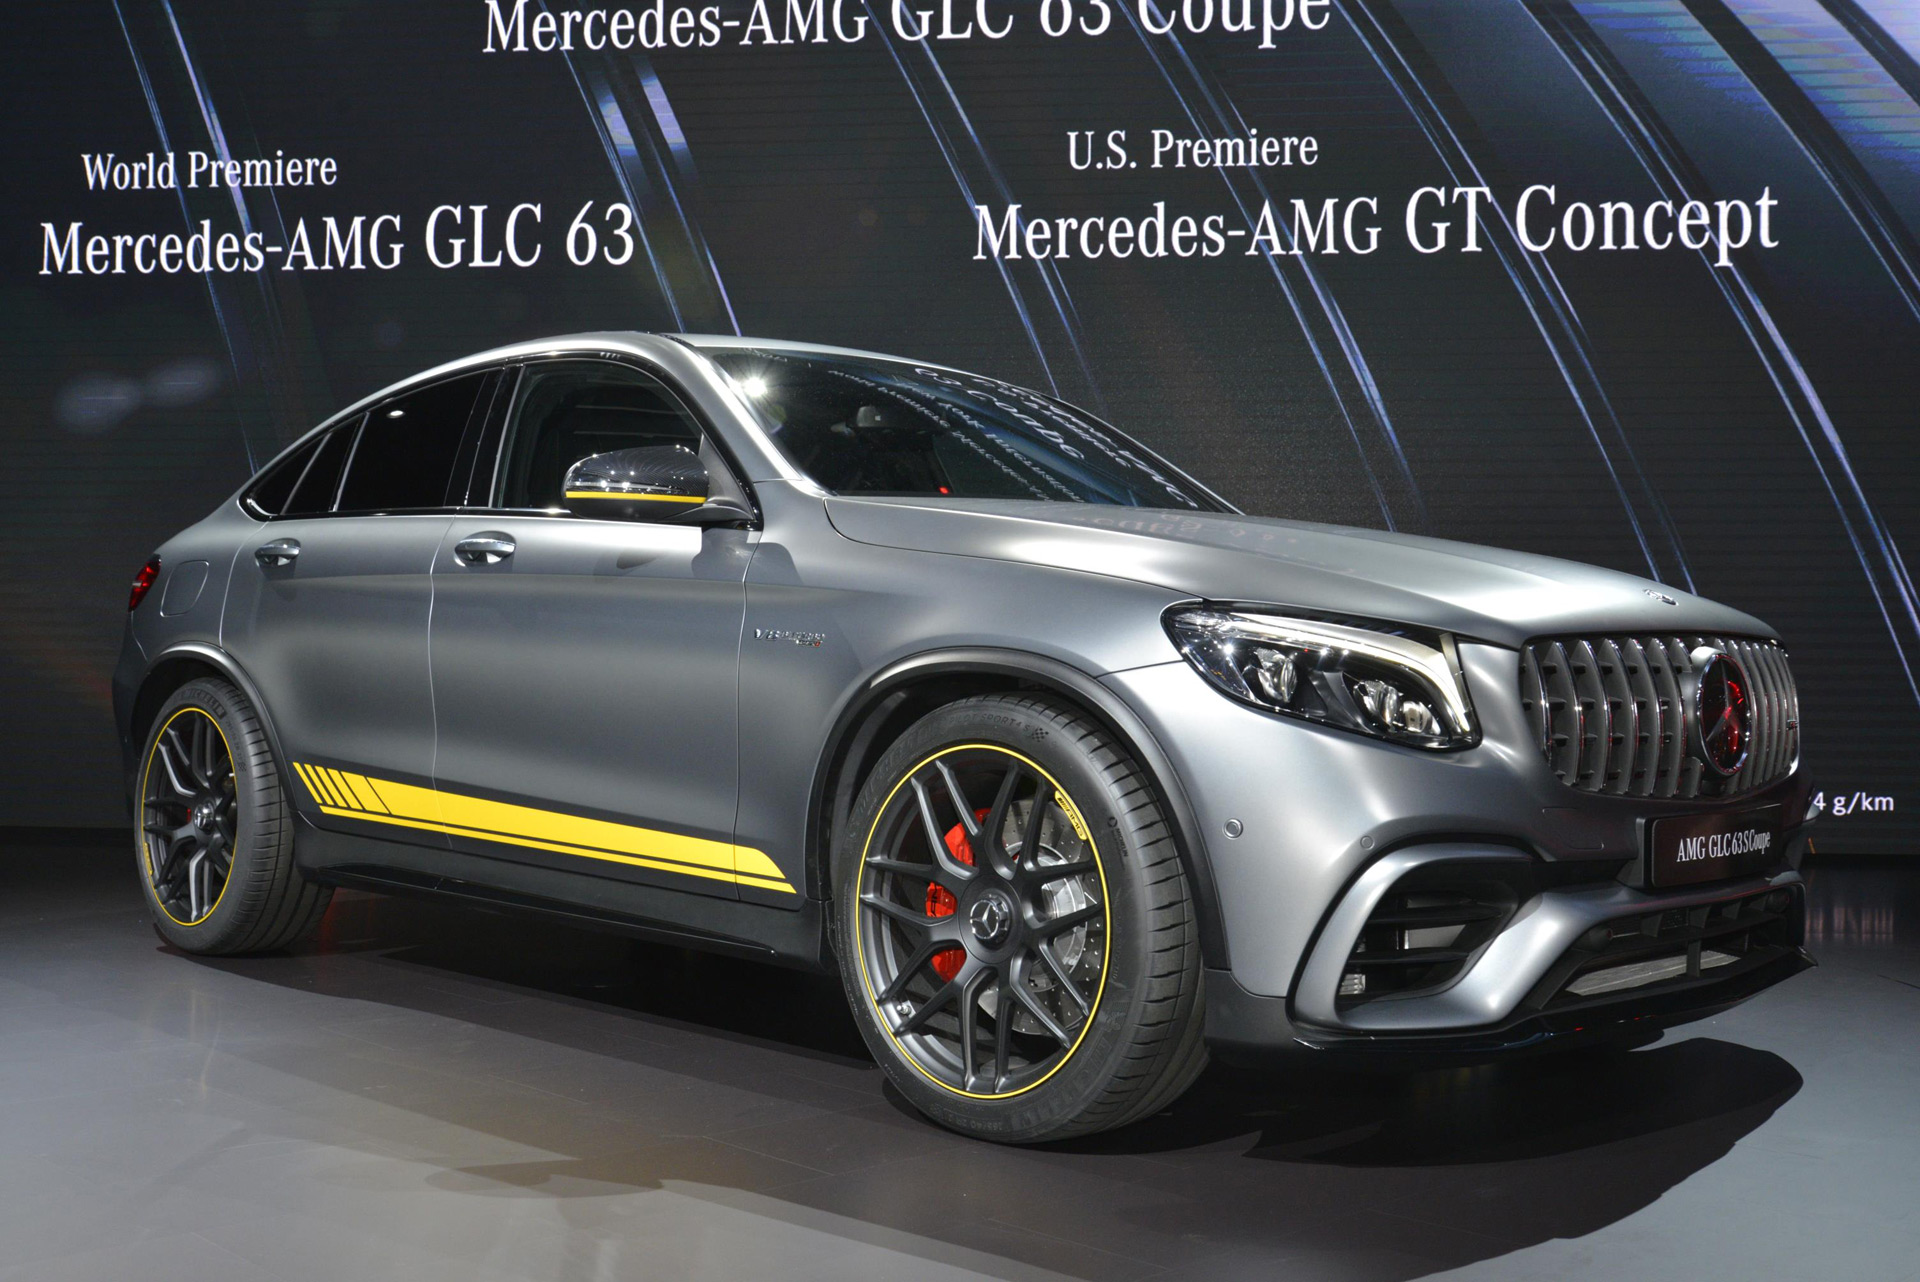 Gle Coupe Facelift 2018 >> The 2018 Mercedes-AMG GLC63 and GLC63 Coupe are your insane compact SUVs